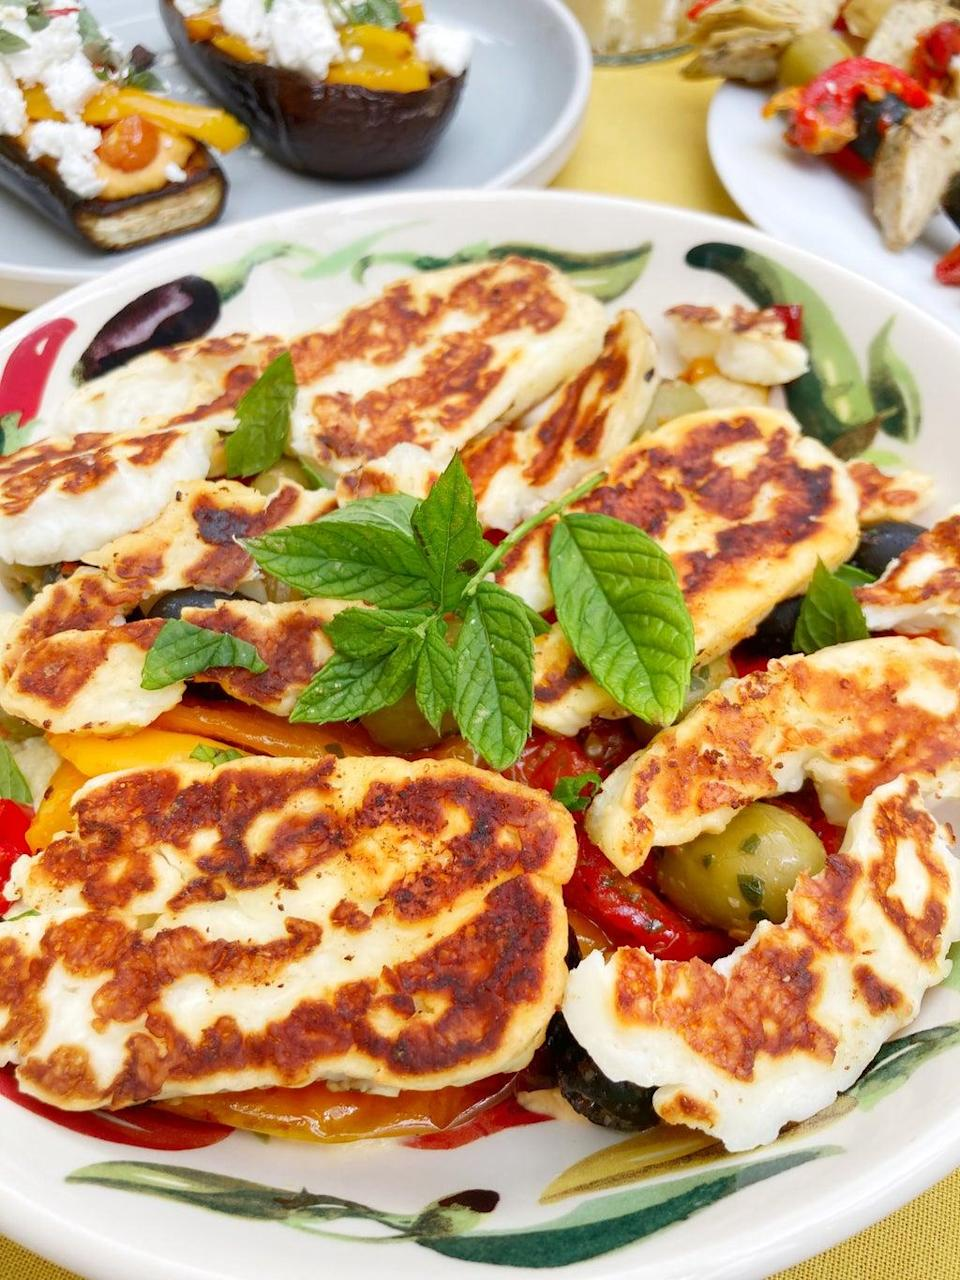 This dish is sure to make you new friends (Ramona's Kitchen)